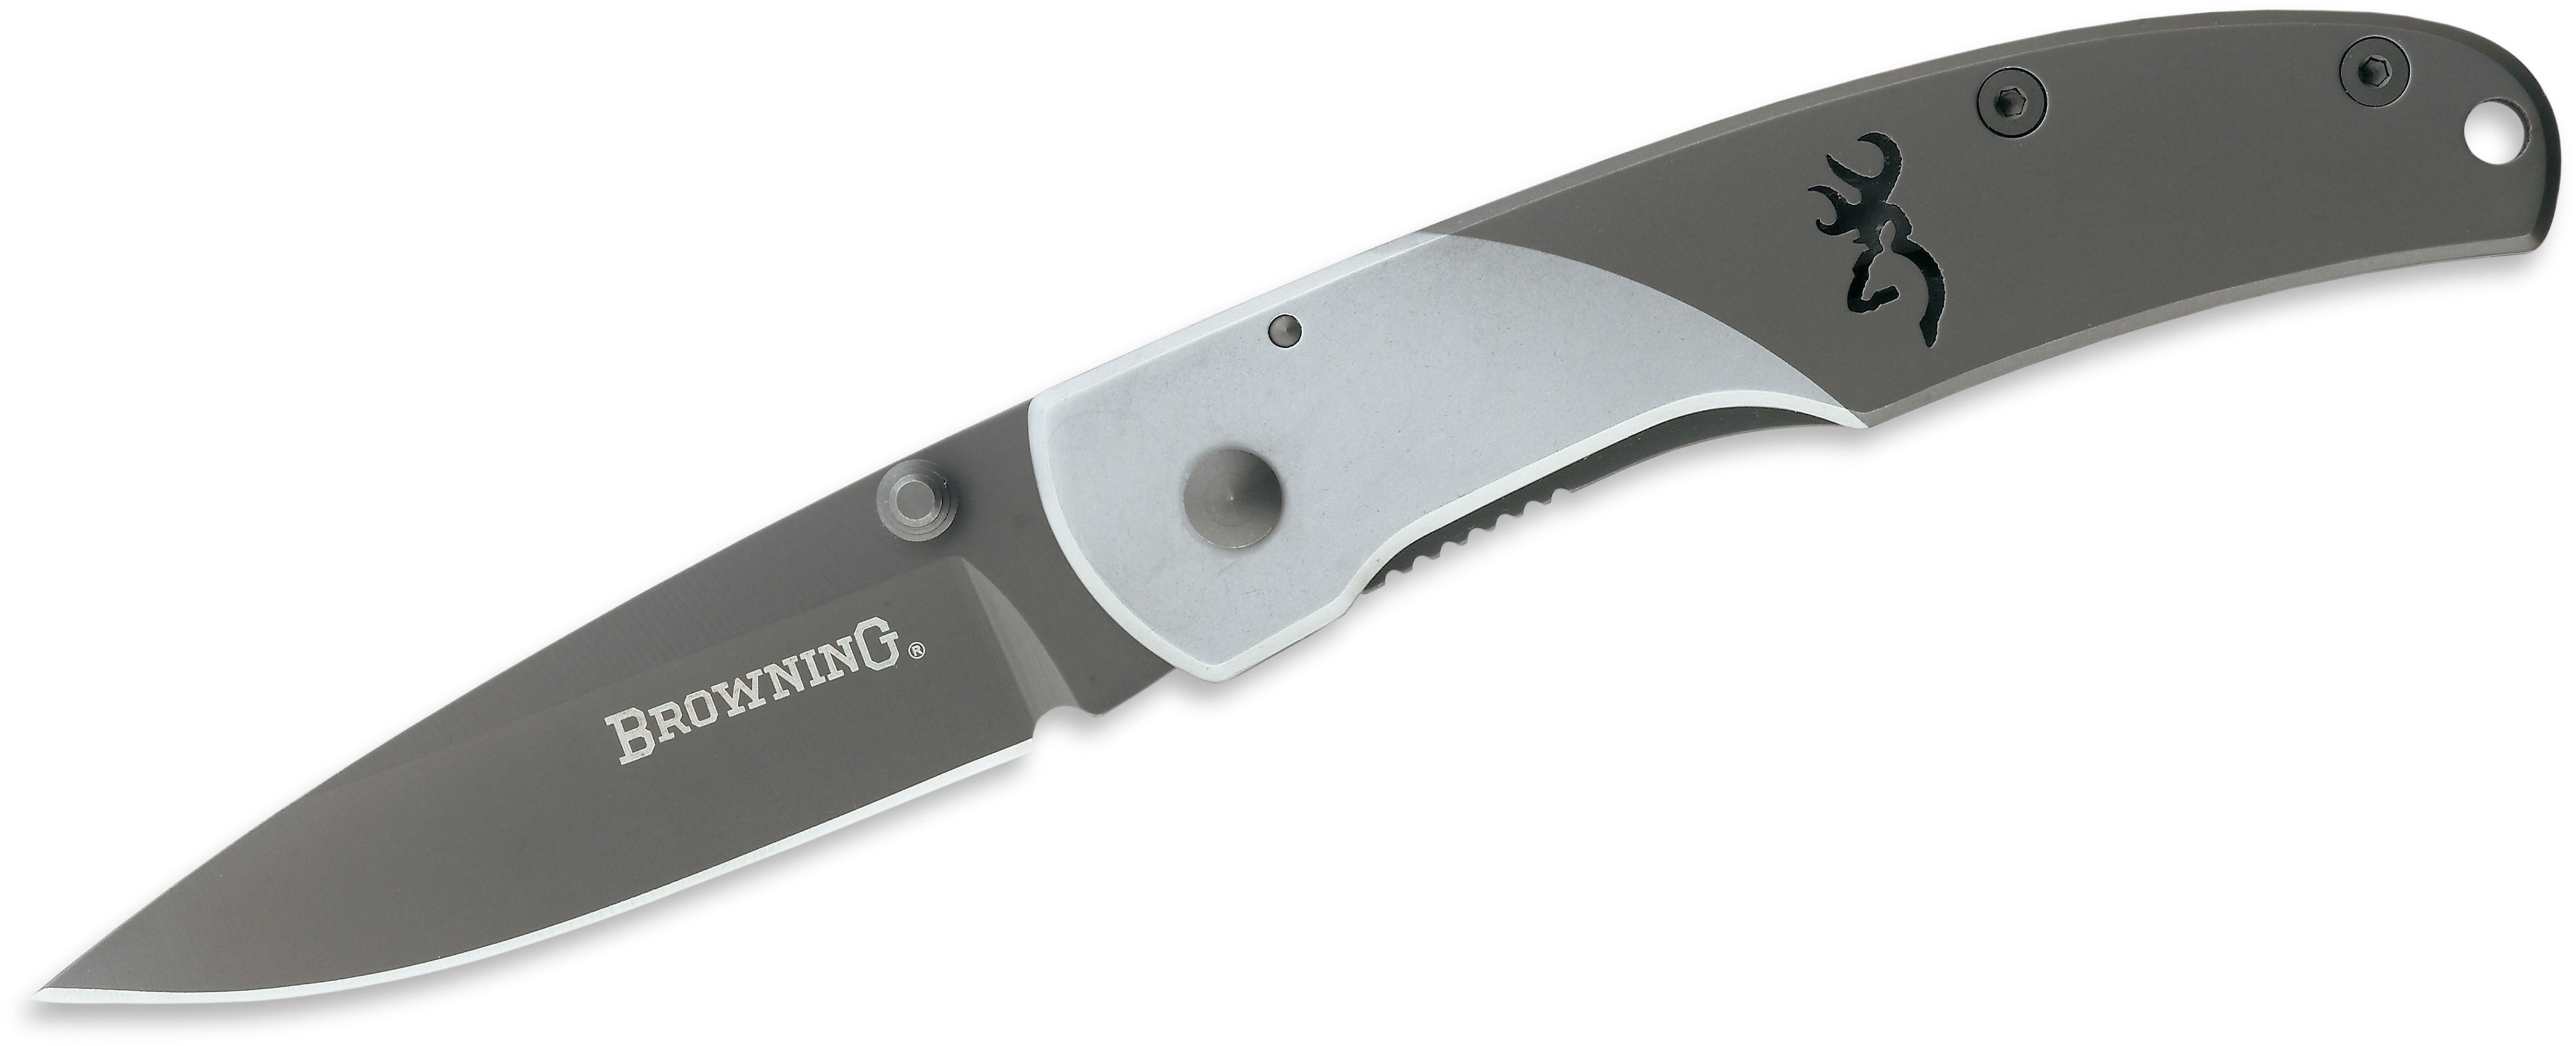 Browning Mountain Ti Medium Folding Knife 3 inch Drop Point Blade, Stainless Steel Handles